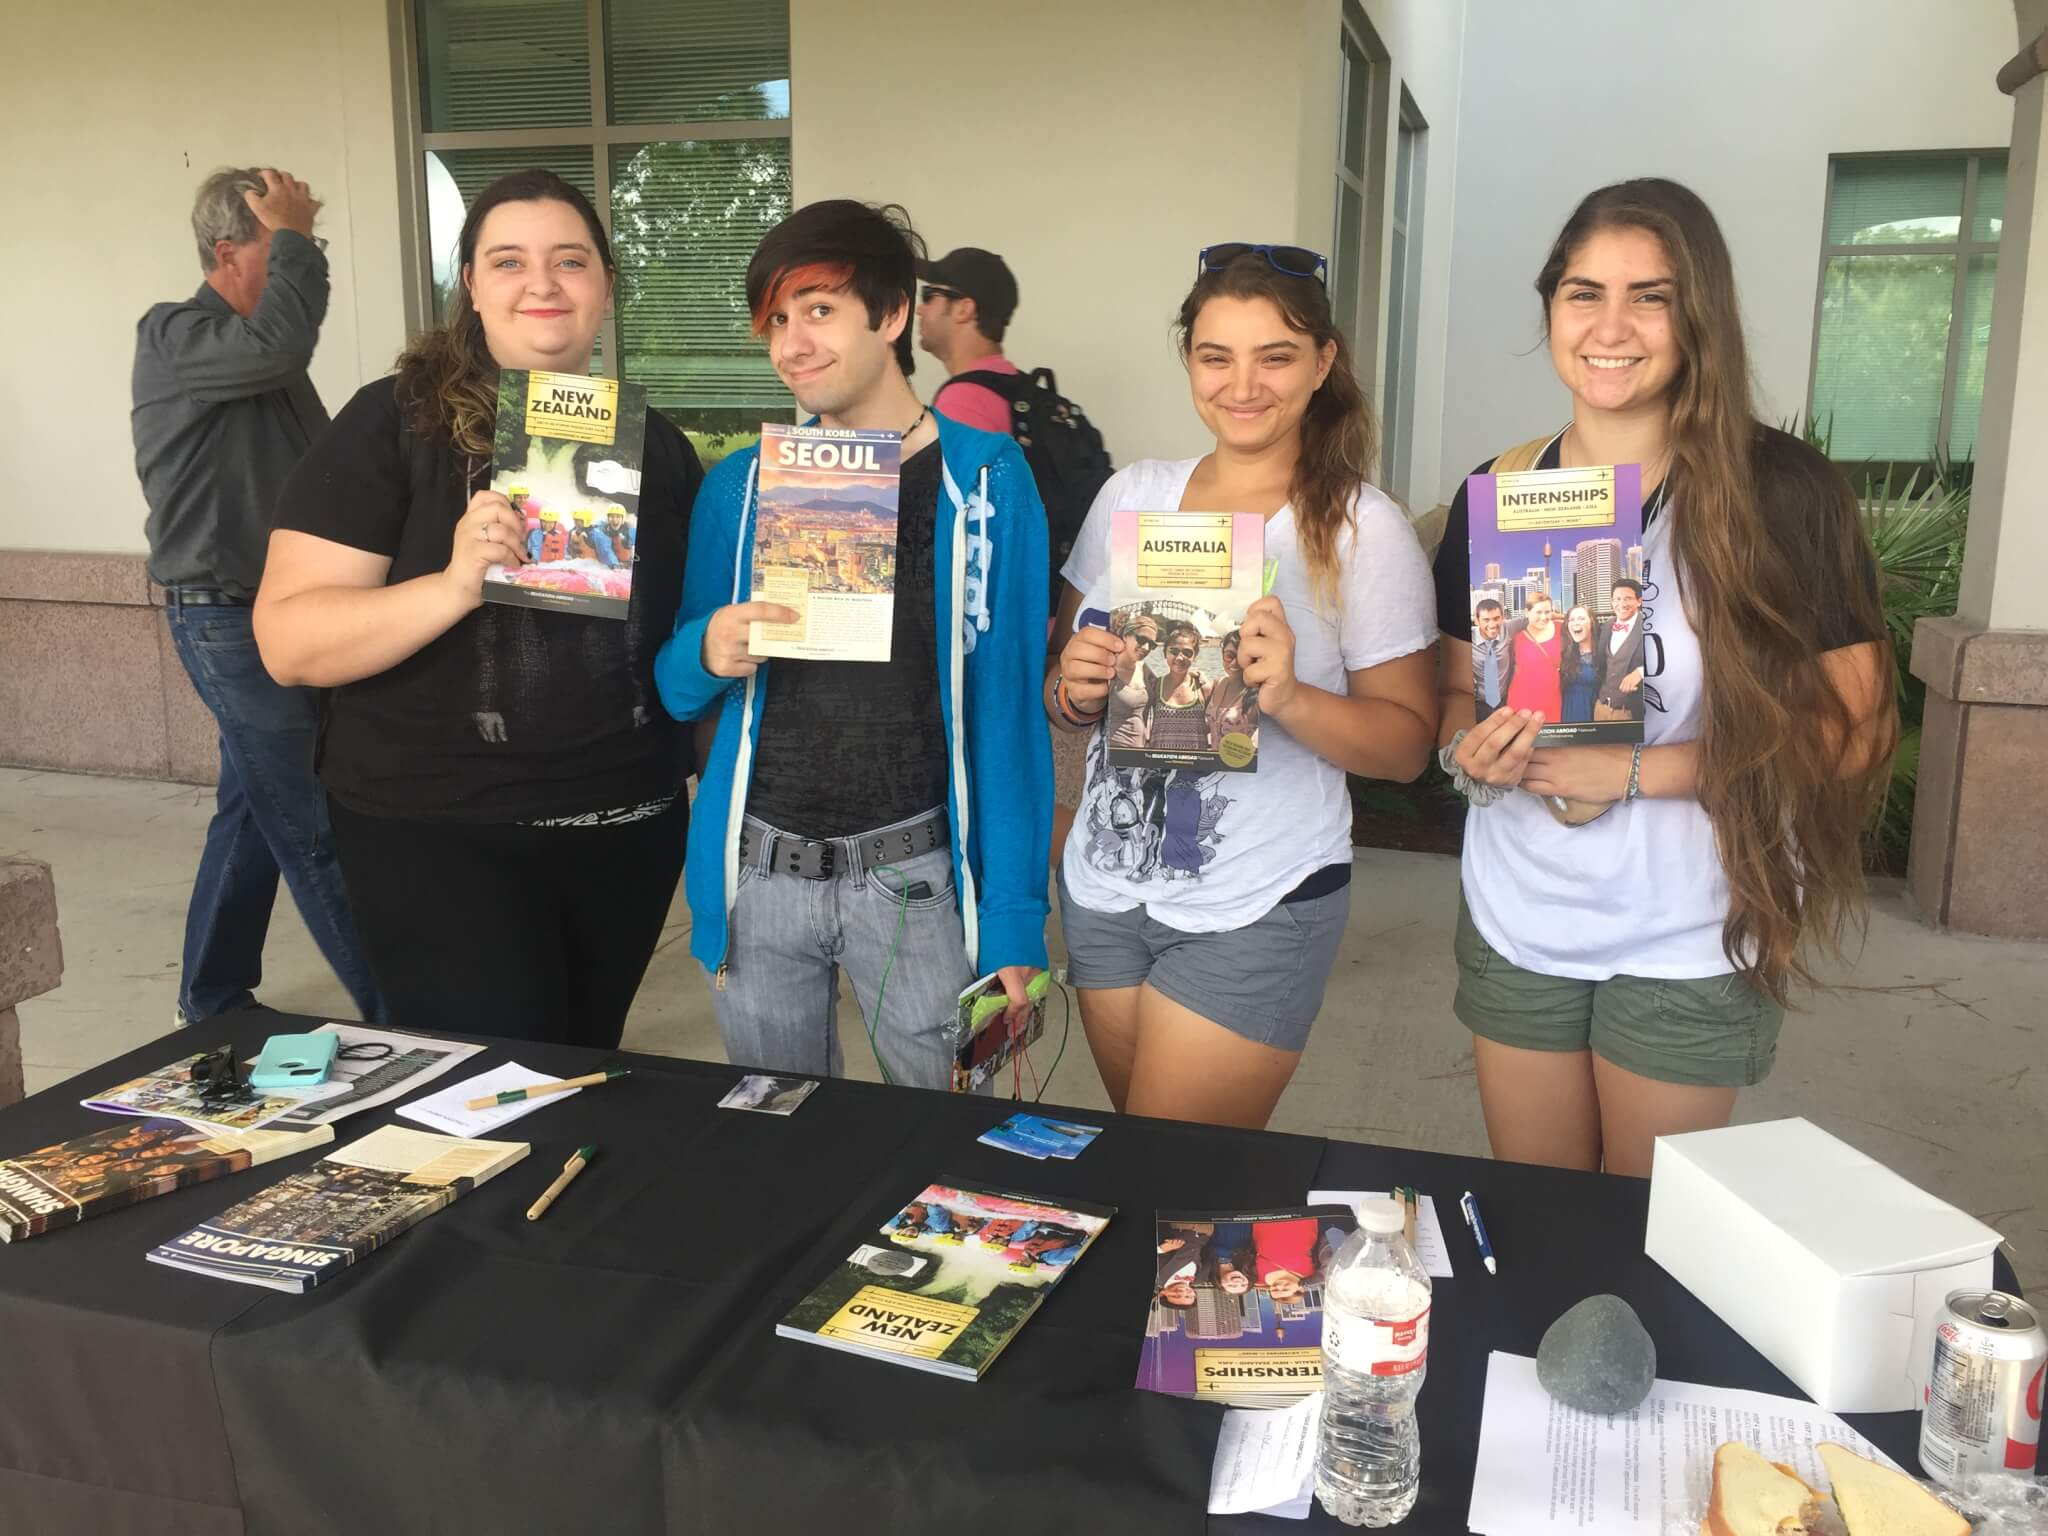 Study Abroad Fair showcases travel opportunities for students